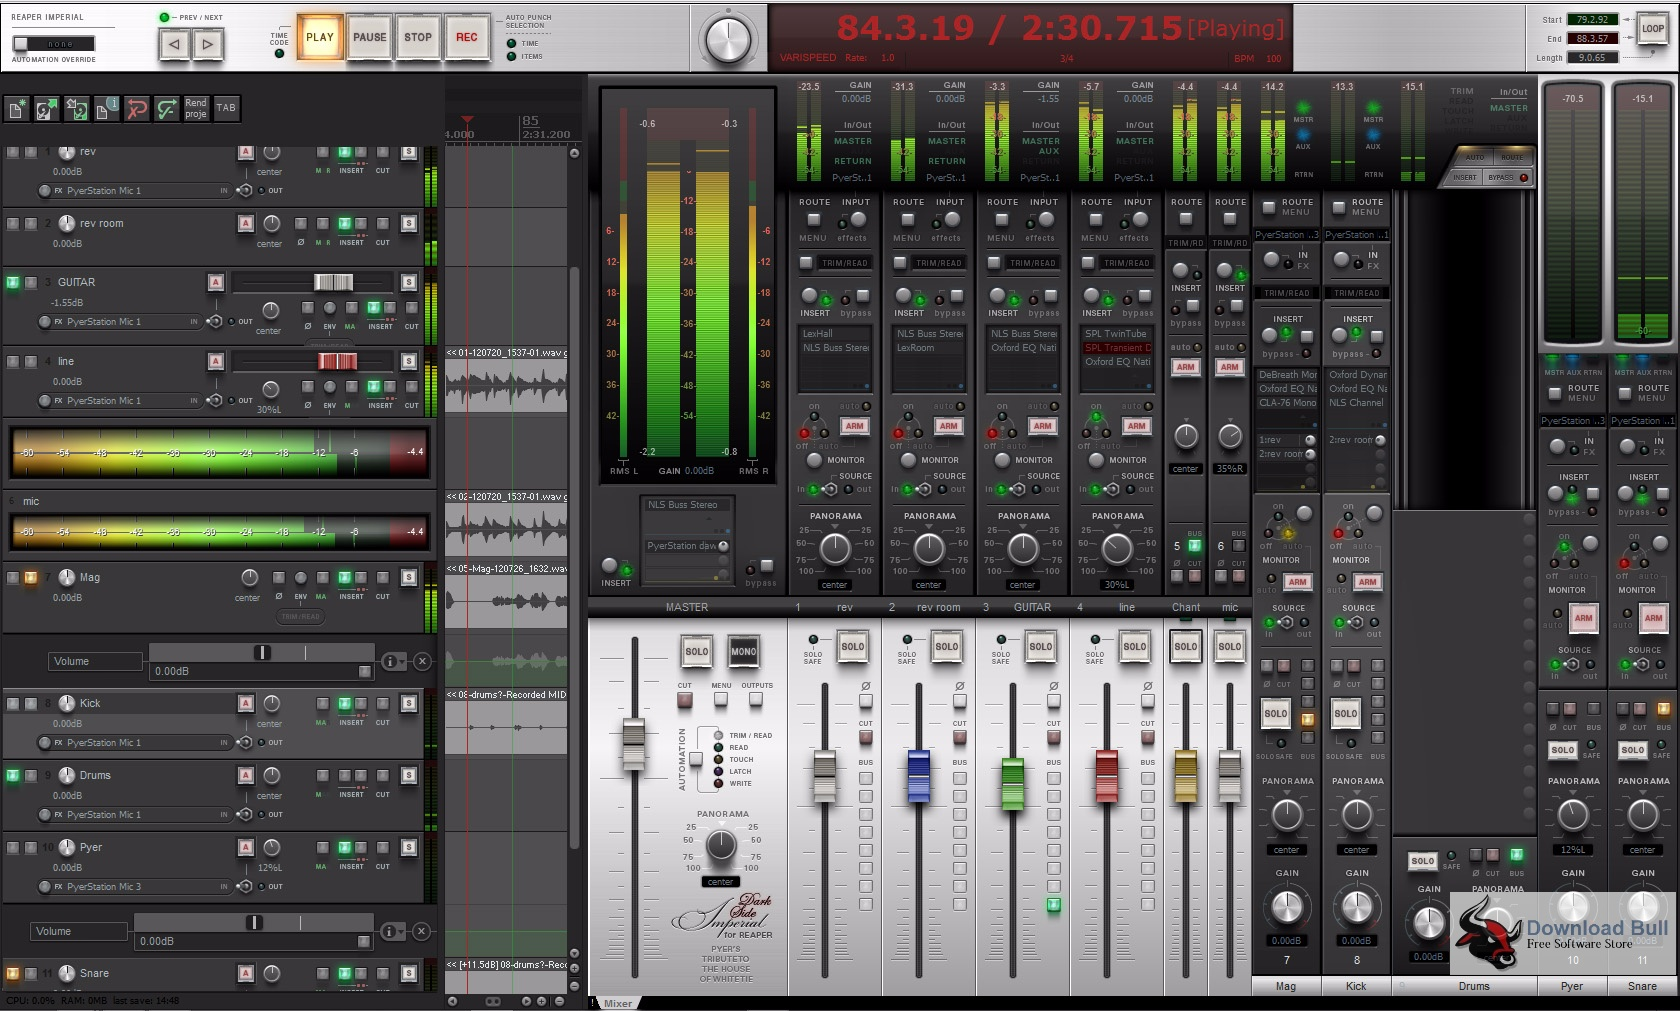 Portable REAPER 5.2 Free Download